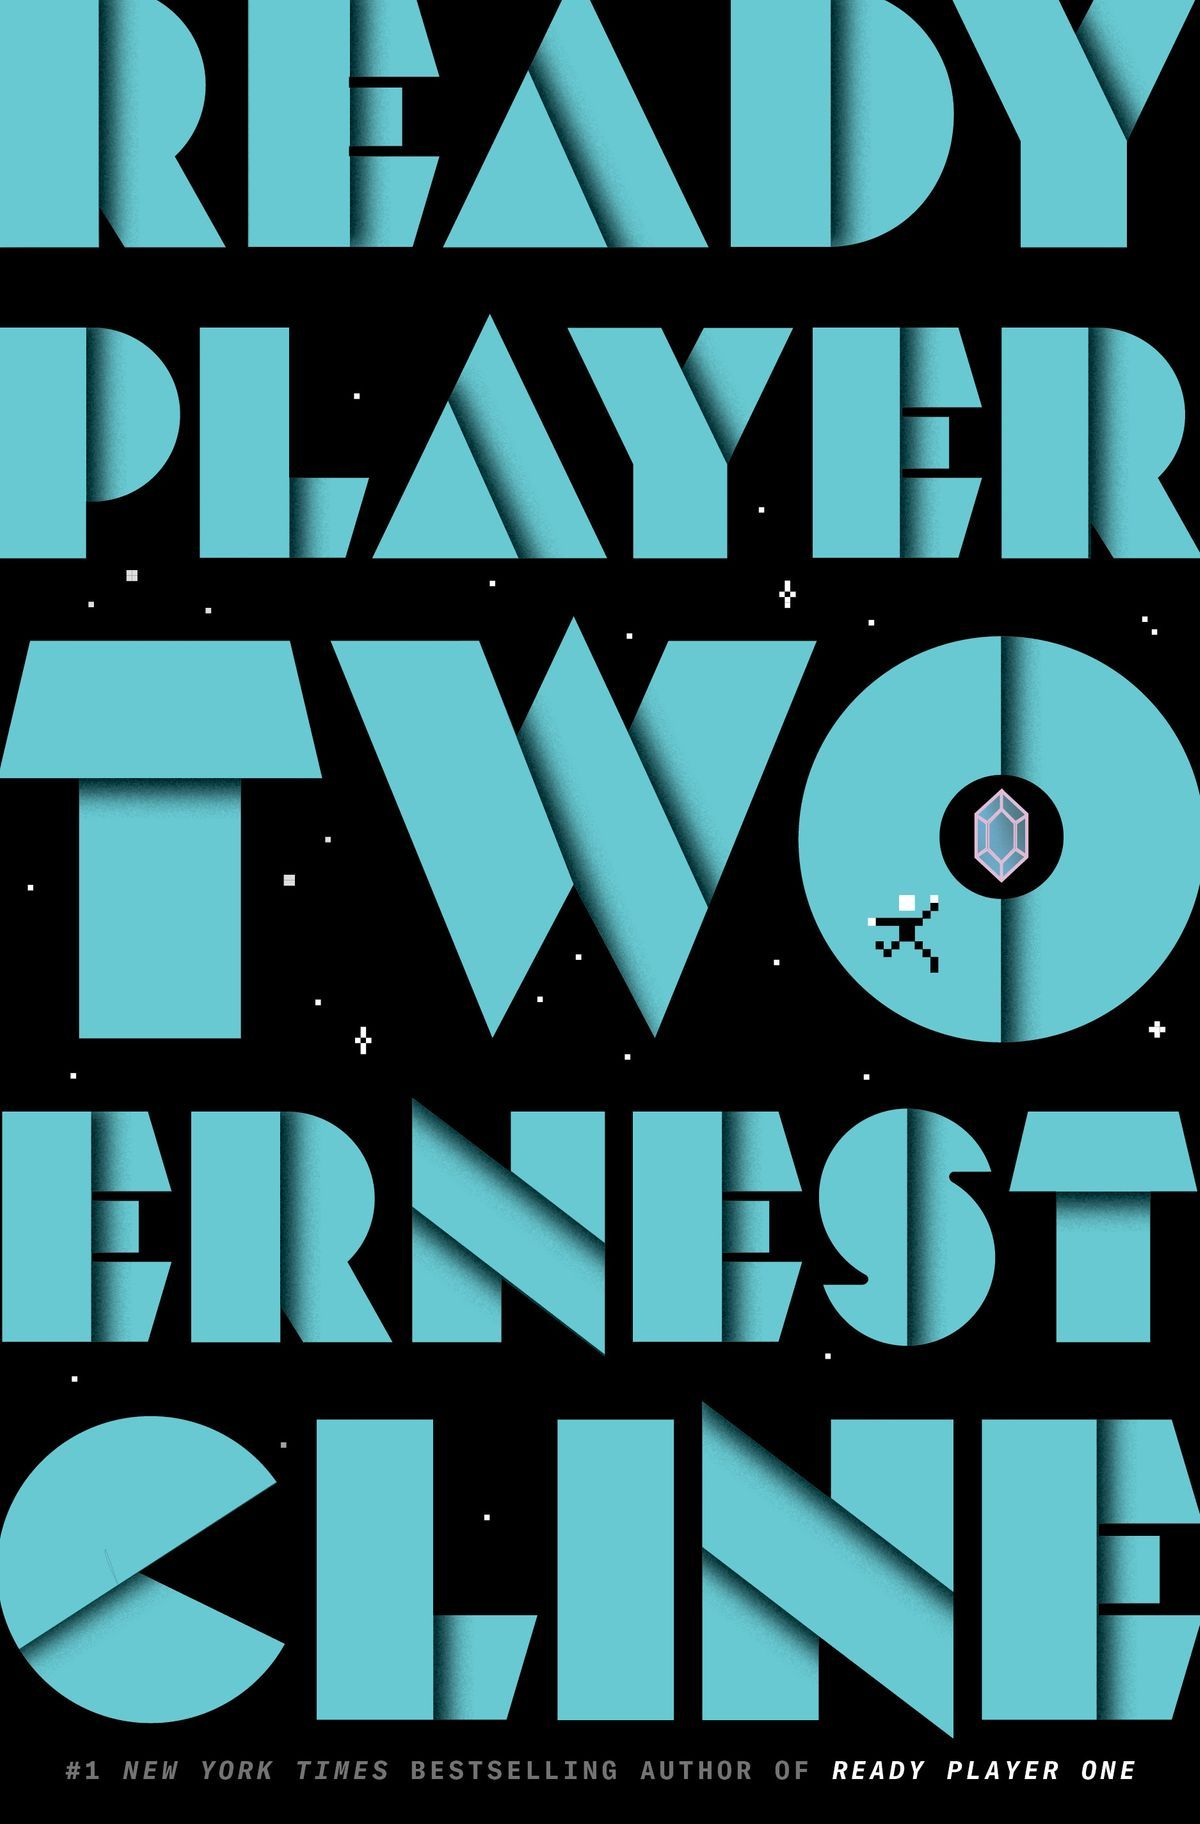 Pdf Ready Player Two Ready Player One 2 By Ernest Cline In 2020 Ready Player Two Ready Player One Ready Player One Book